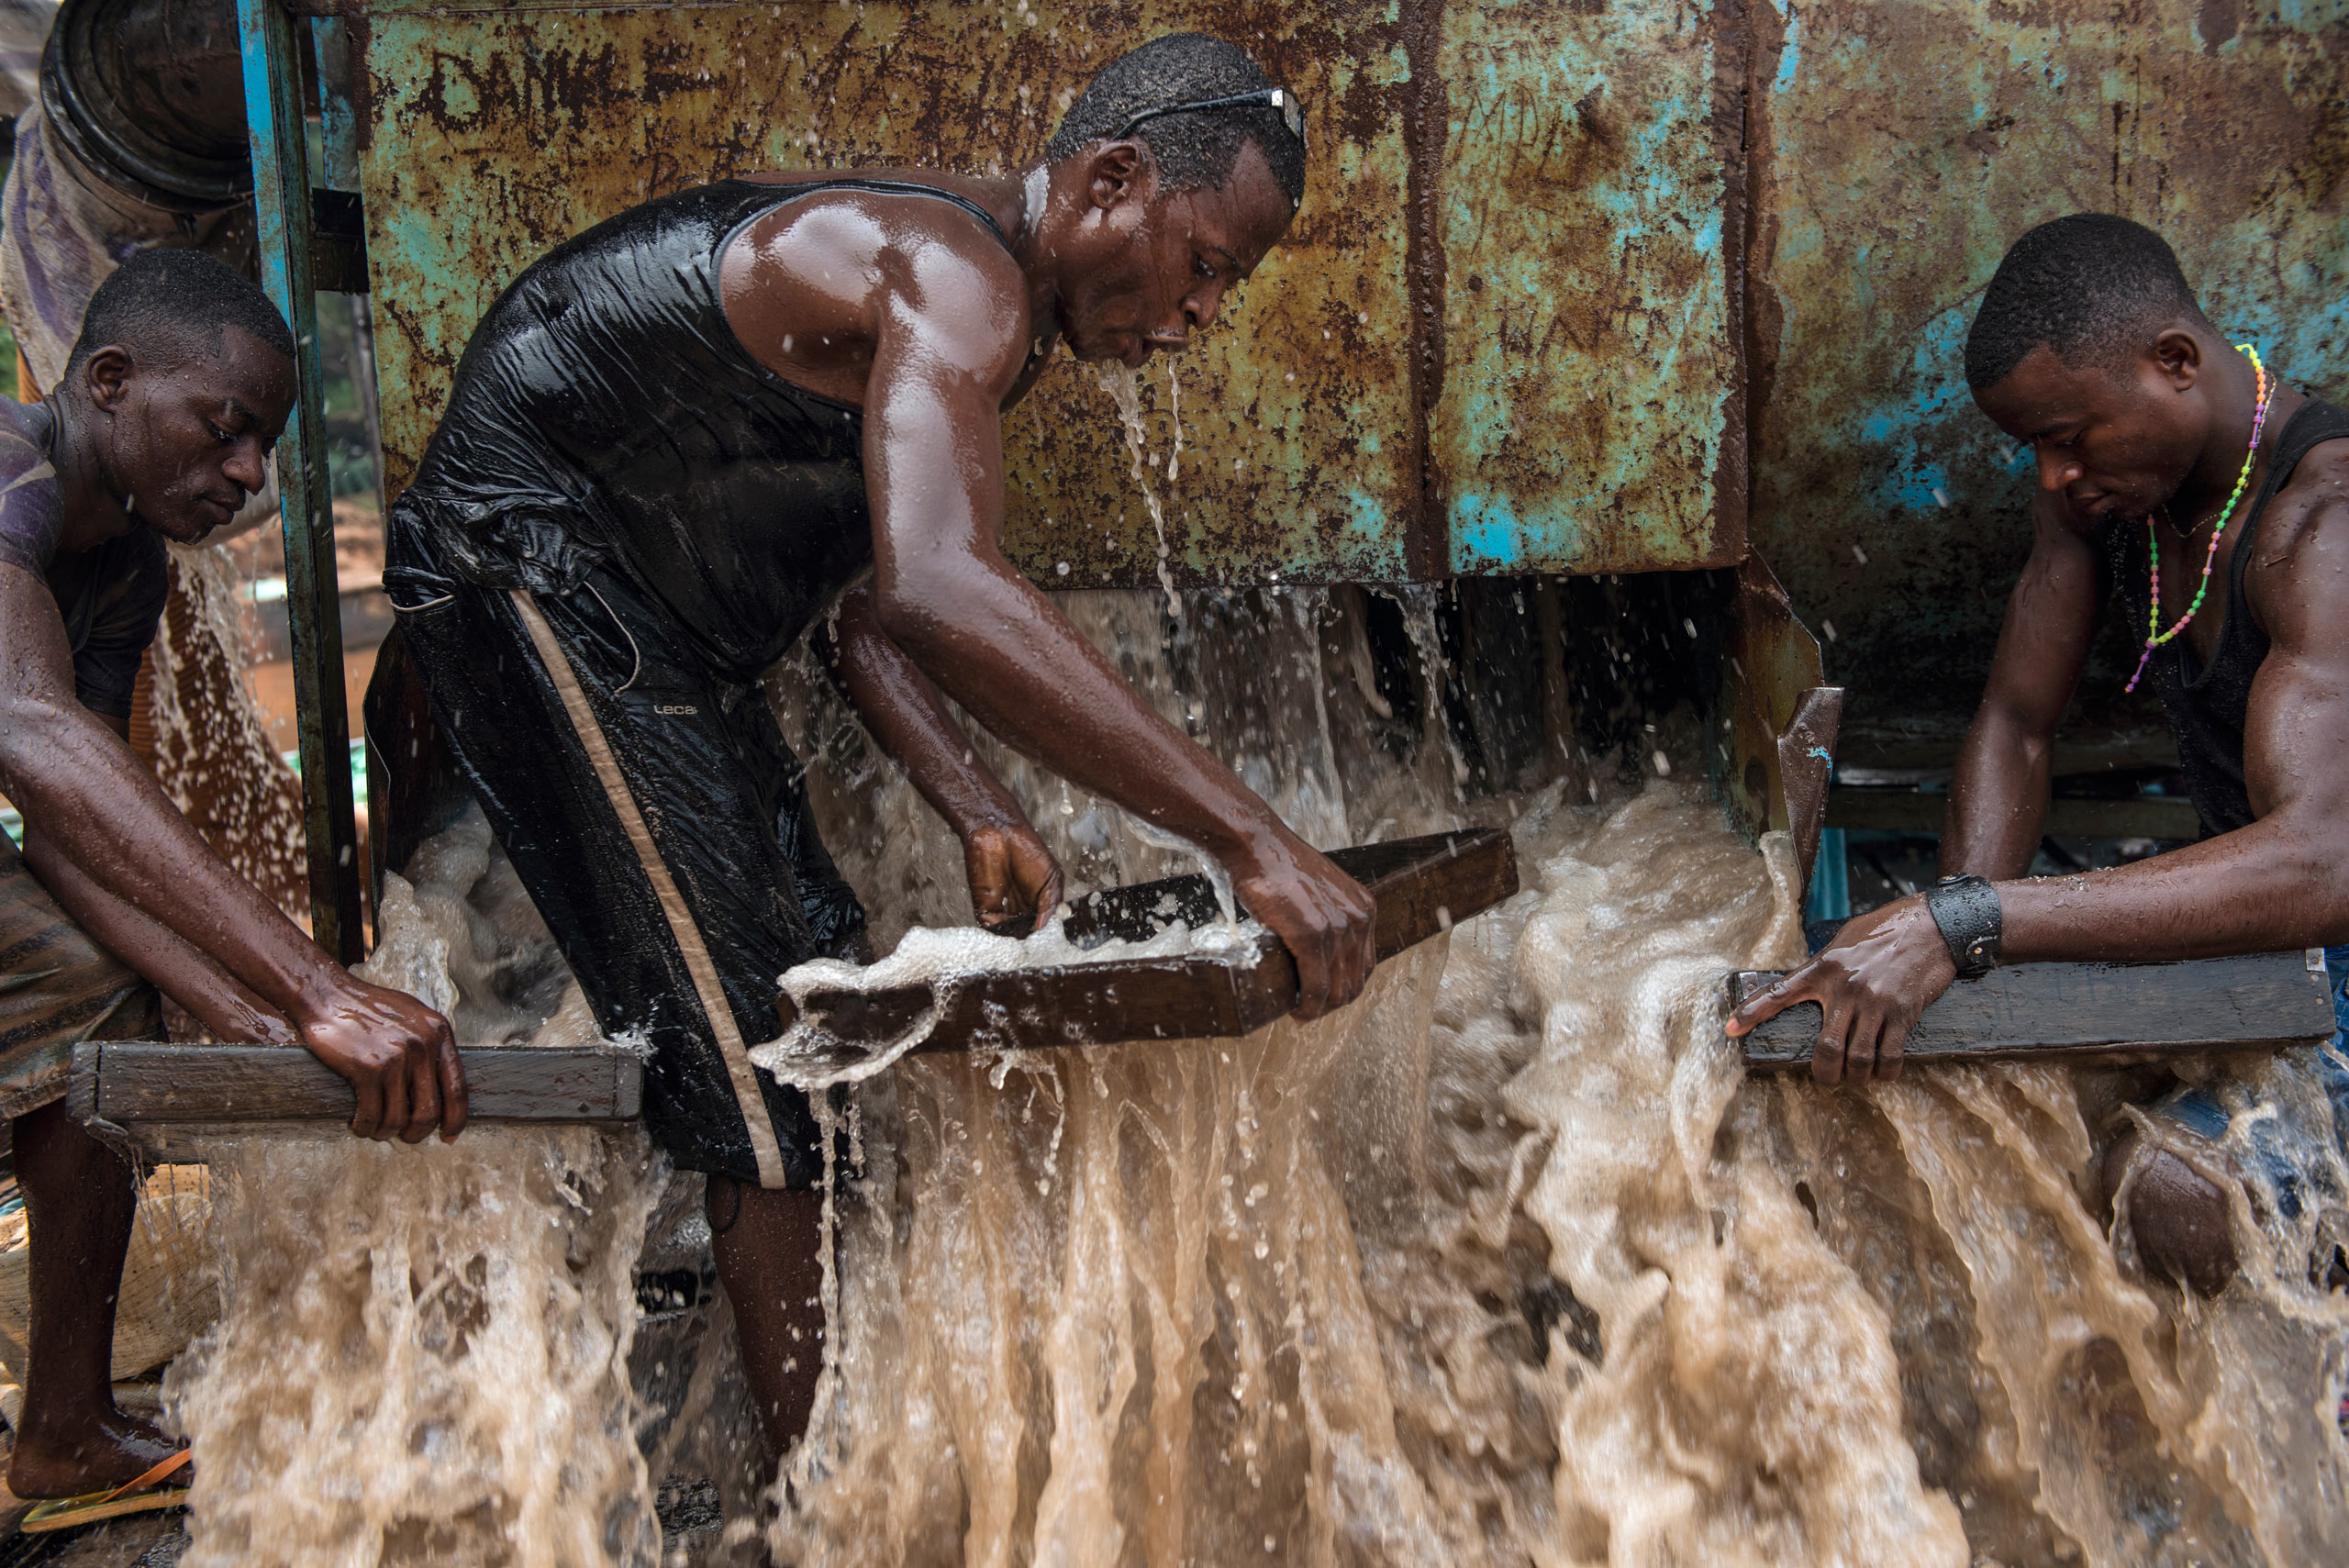 Congolese miners pump gravel from riverbeds to search for diamonds. They earn money only when they find one. Democratic Republic of Congo. Aug. 6, 2015.